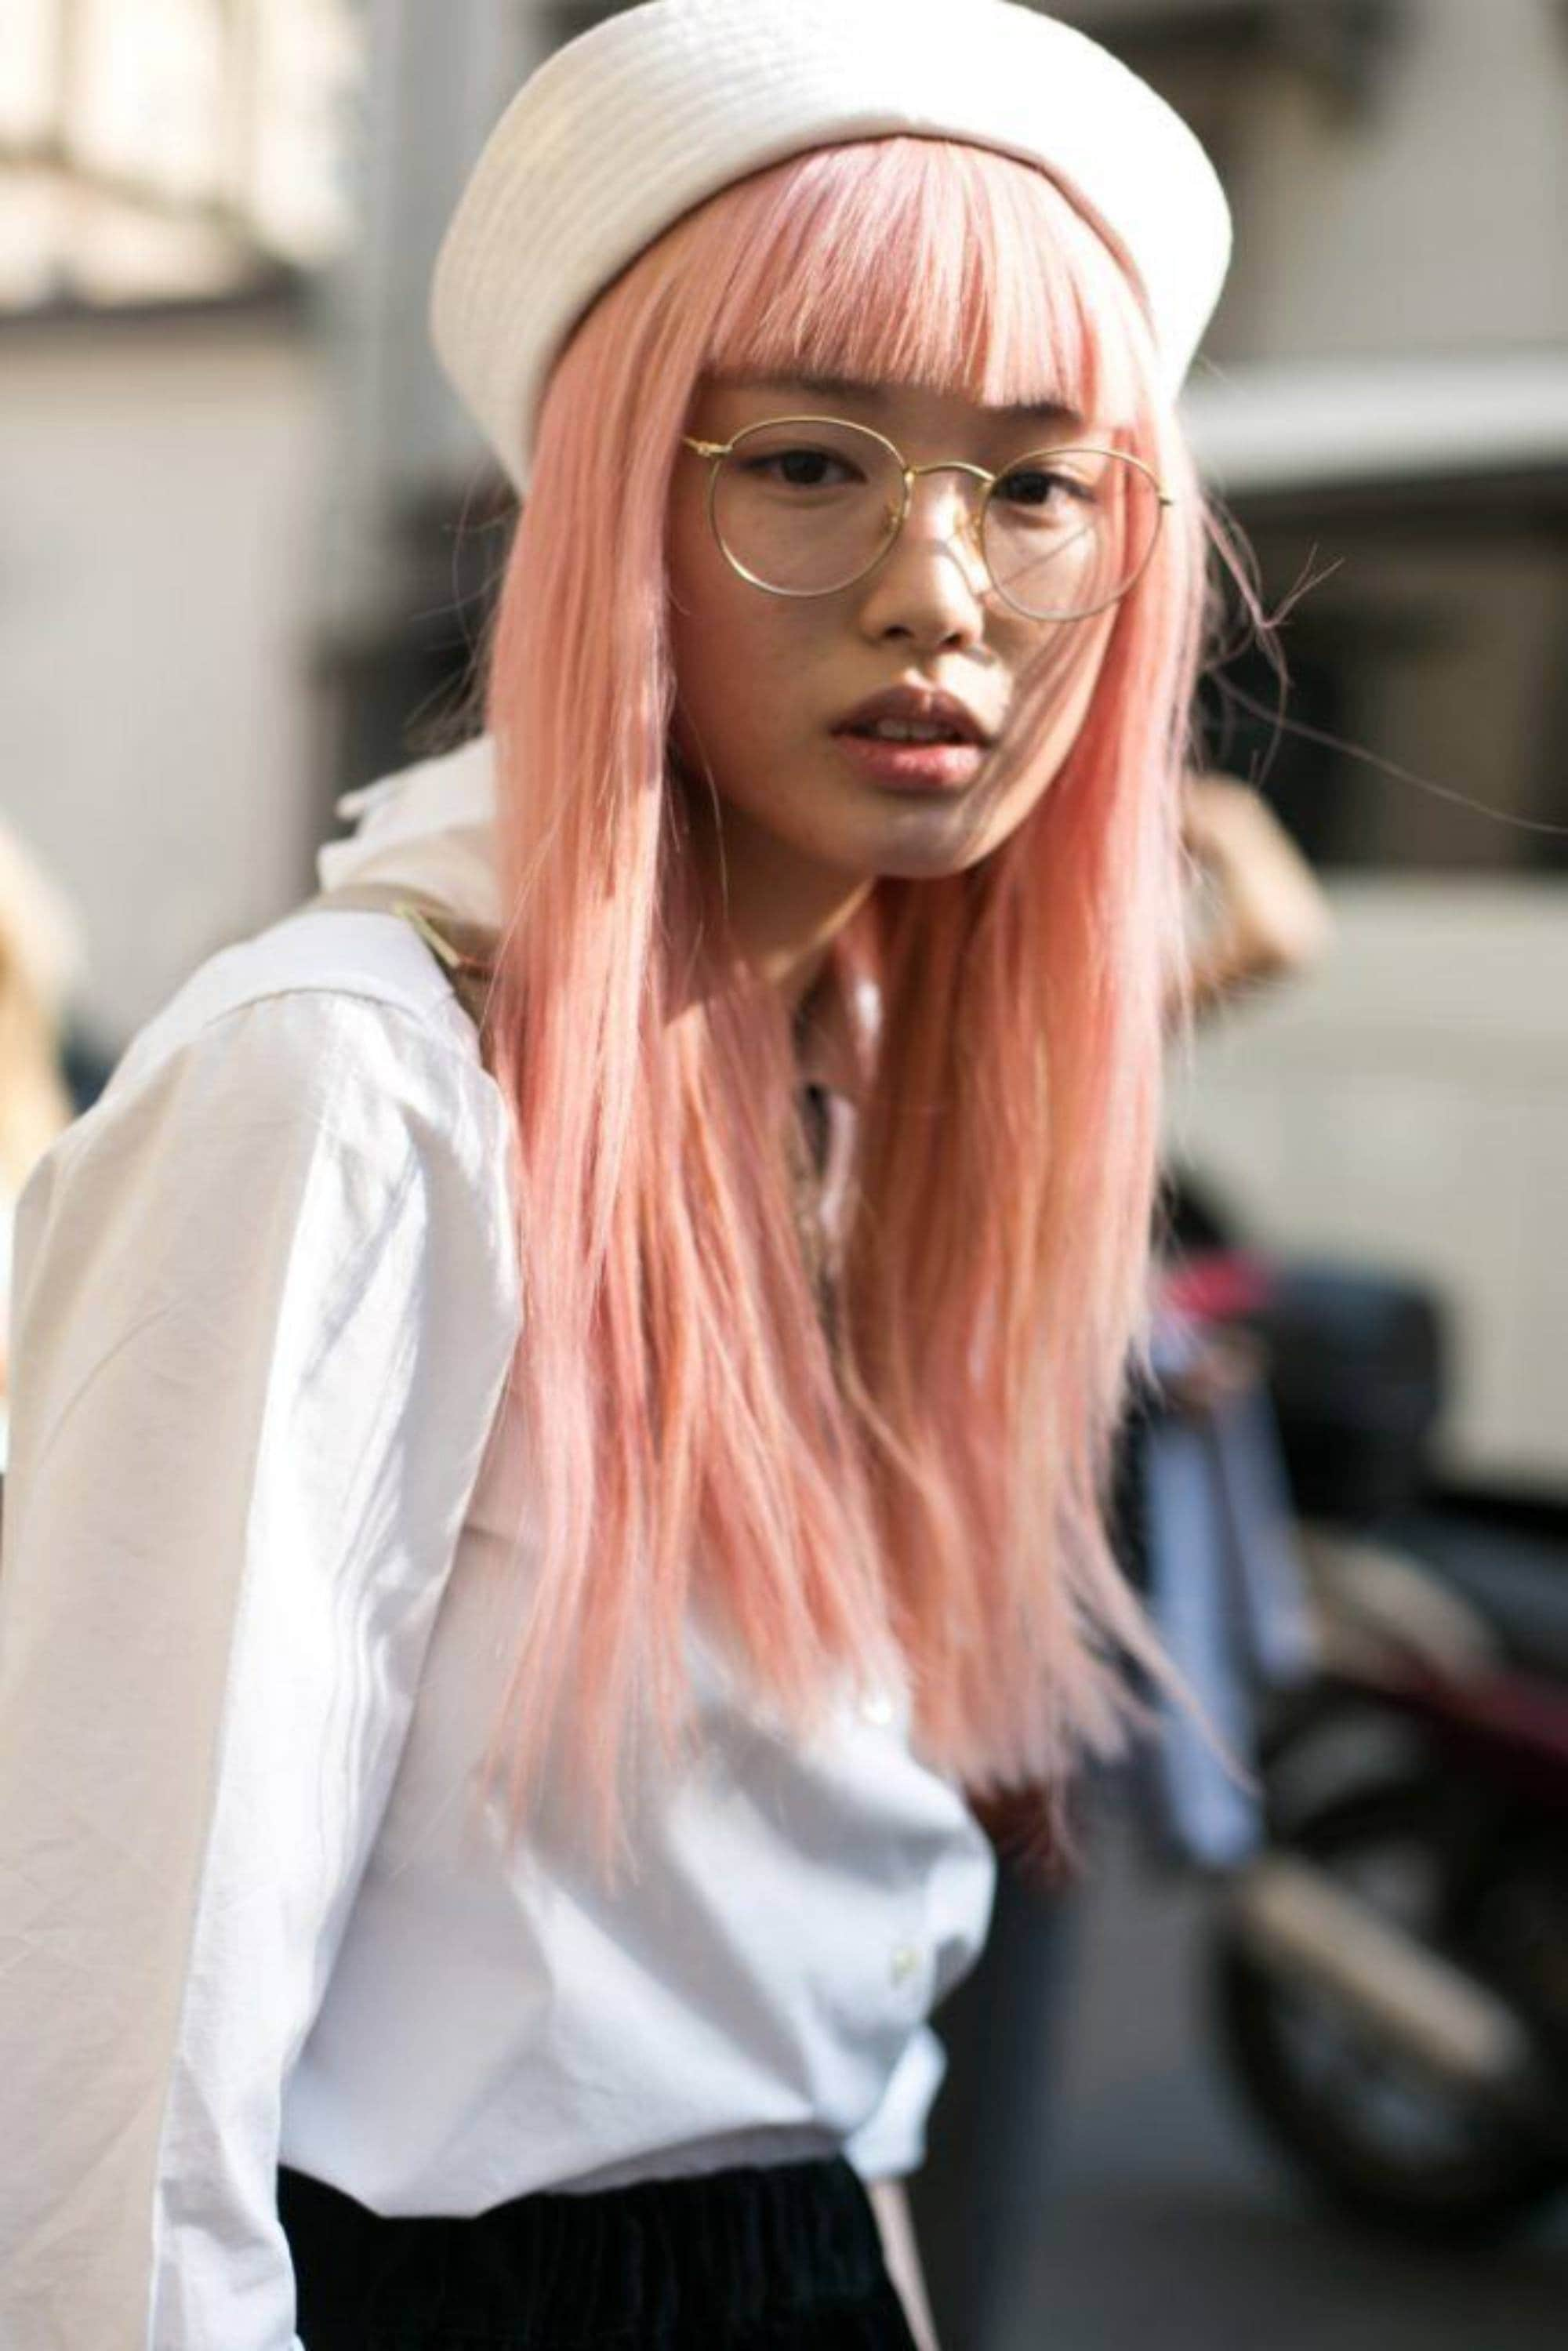 Bleached hair colors: Asian woman with faded pink hair